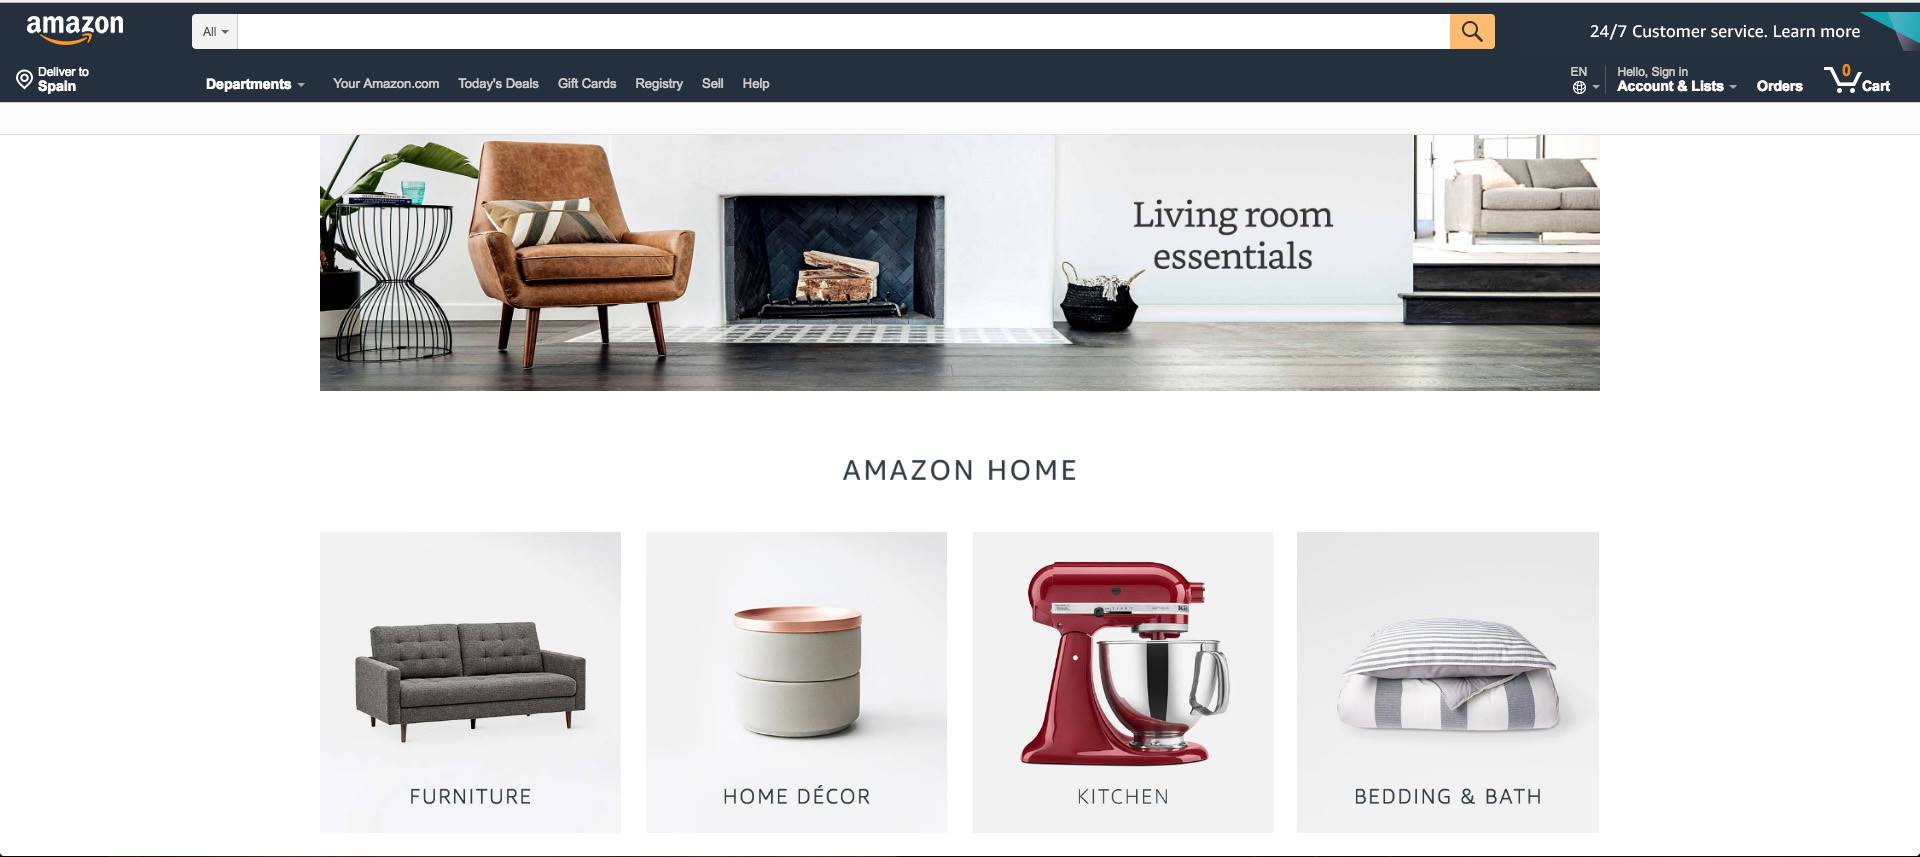 amazon home. Amazon, los muebles del gigante